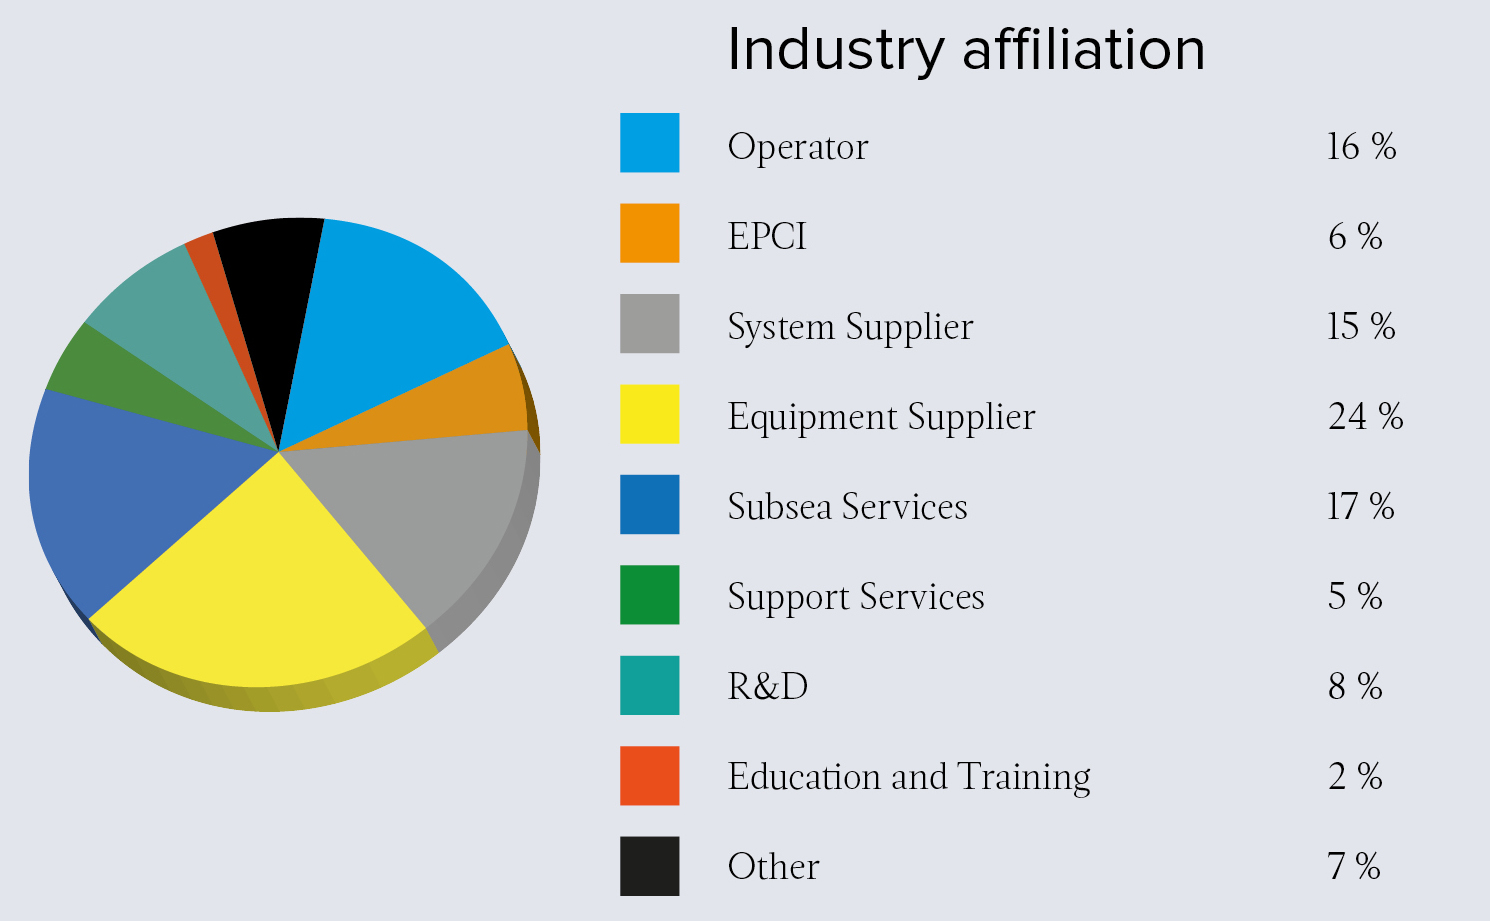 Industry affiliation